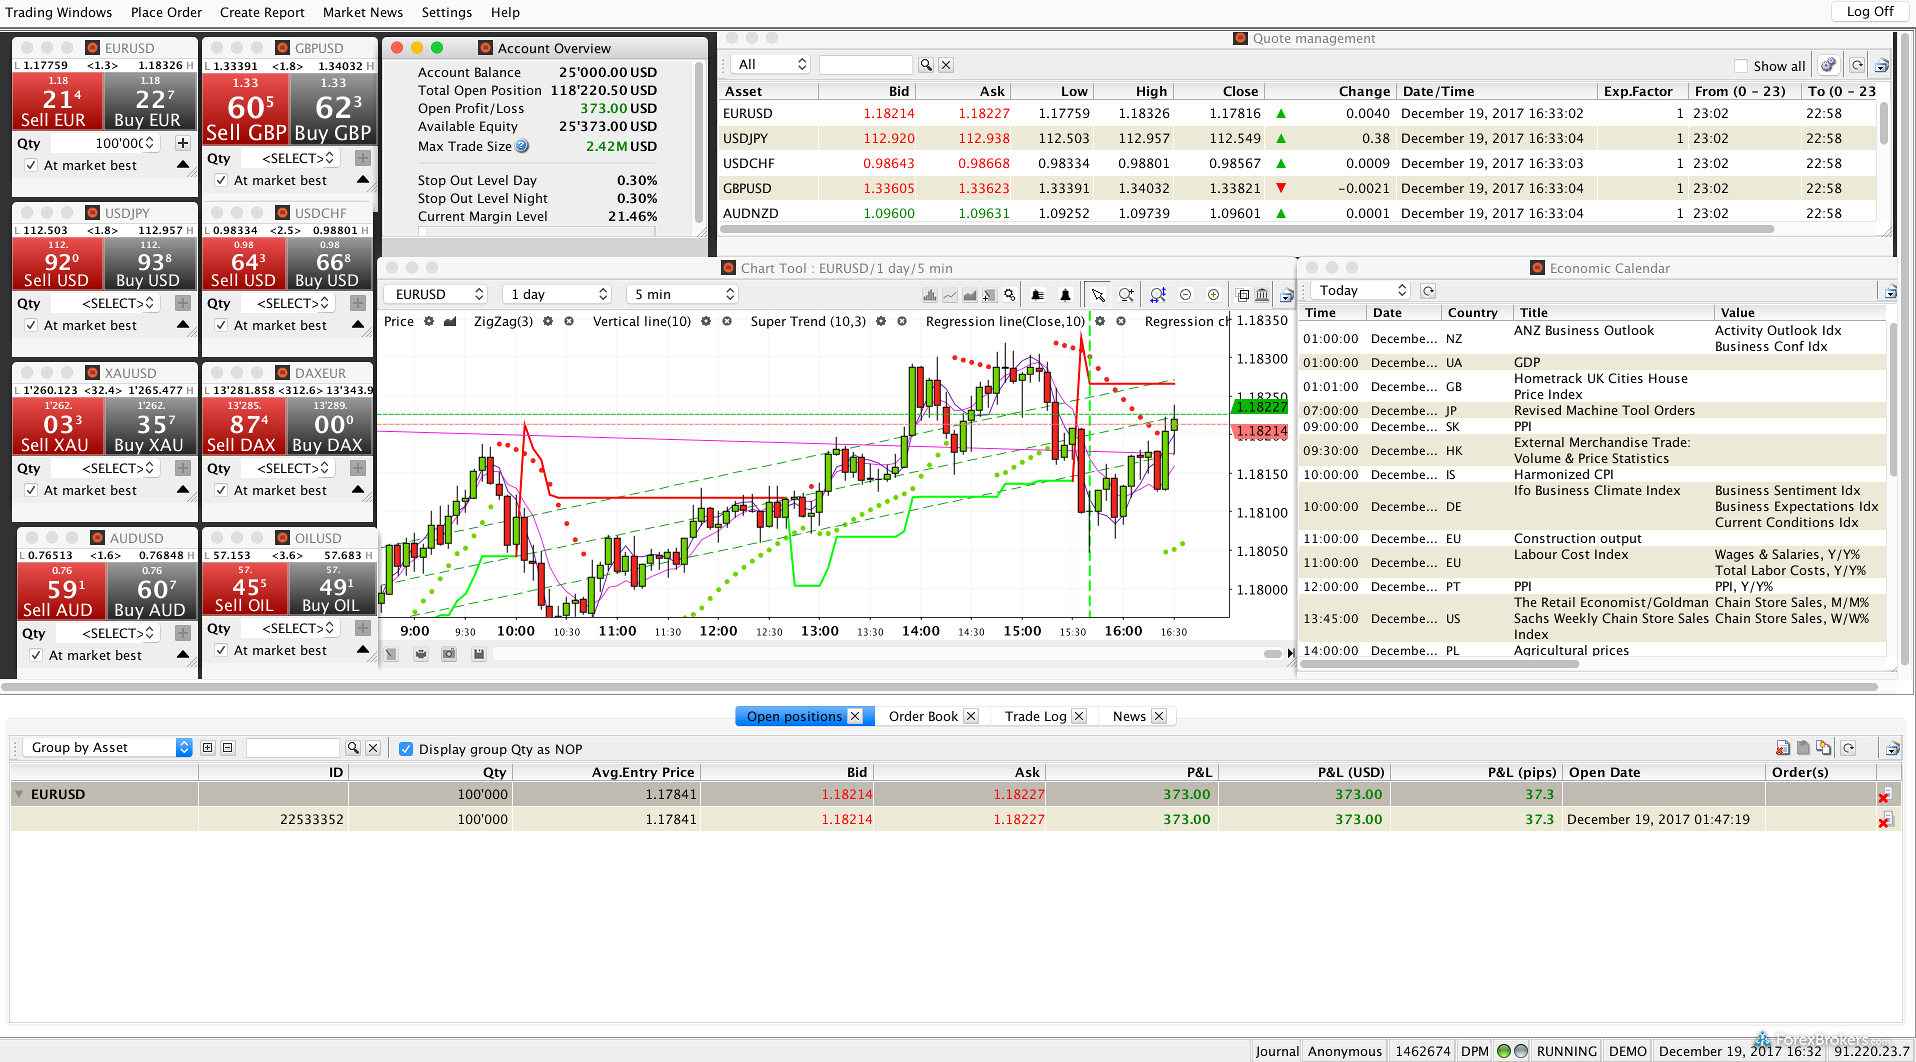 Swissquote bank Advanced Trader Desktop platform